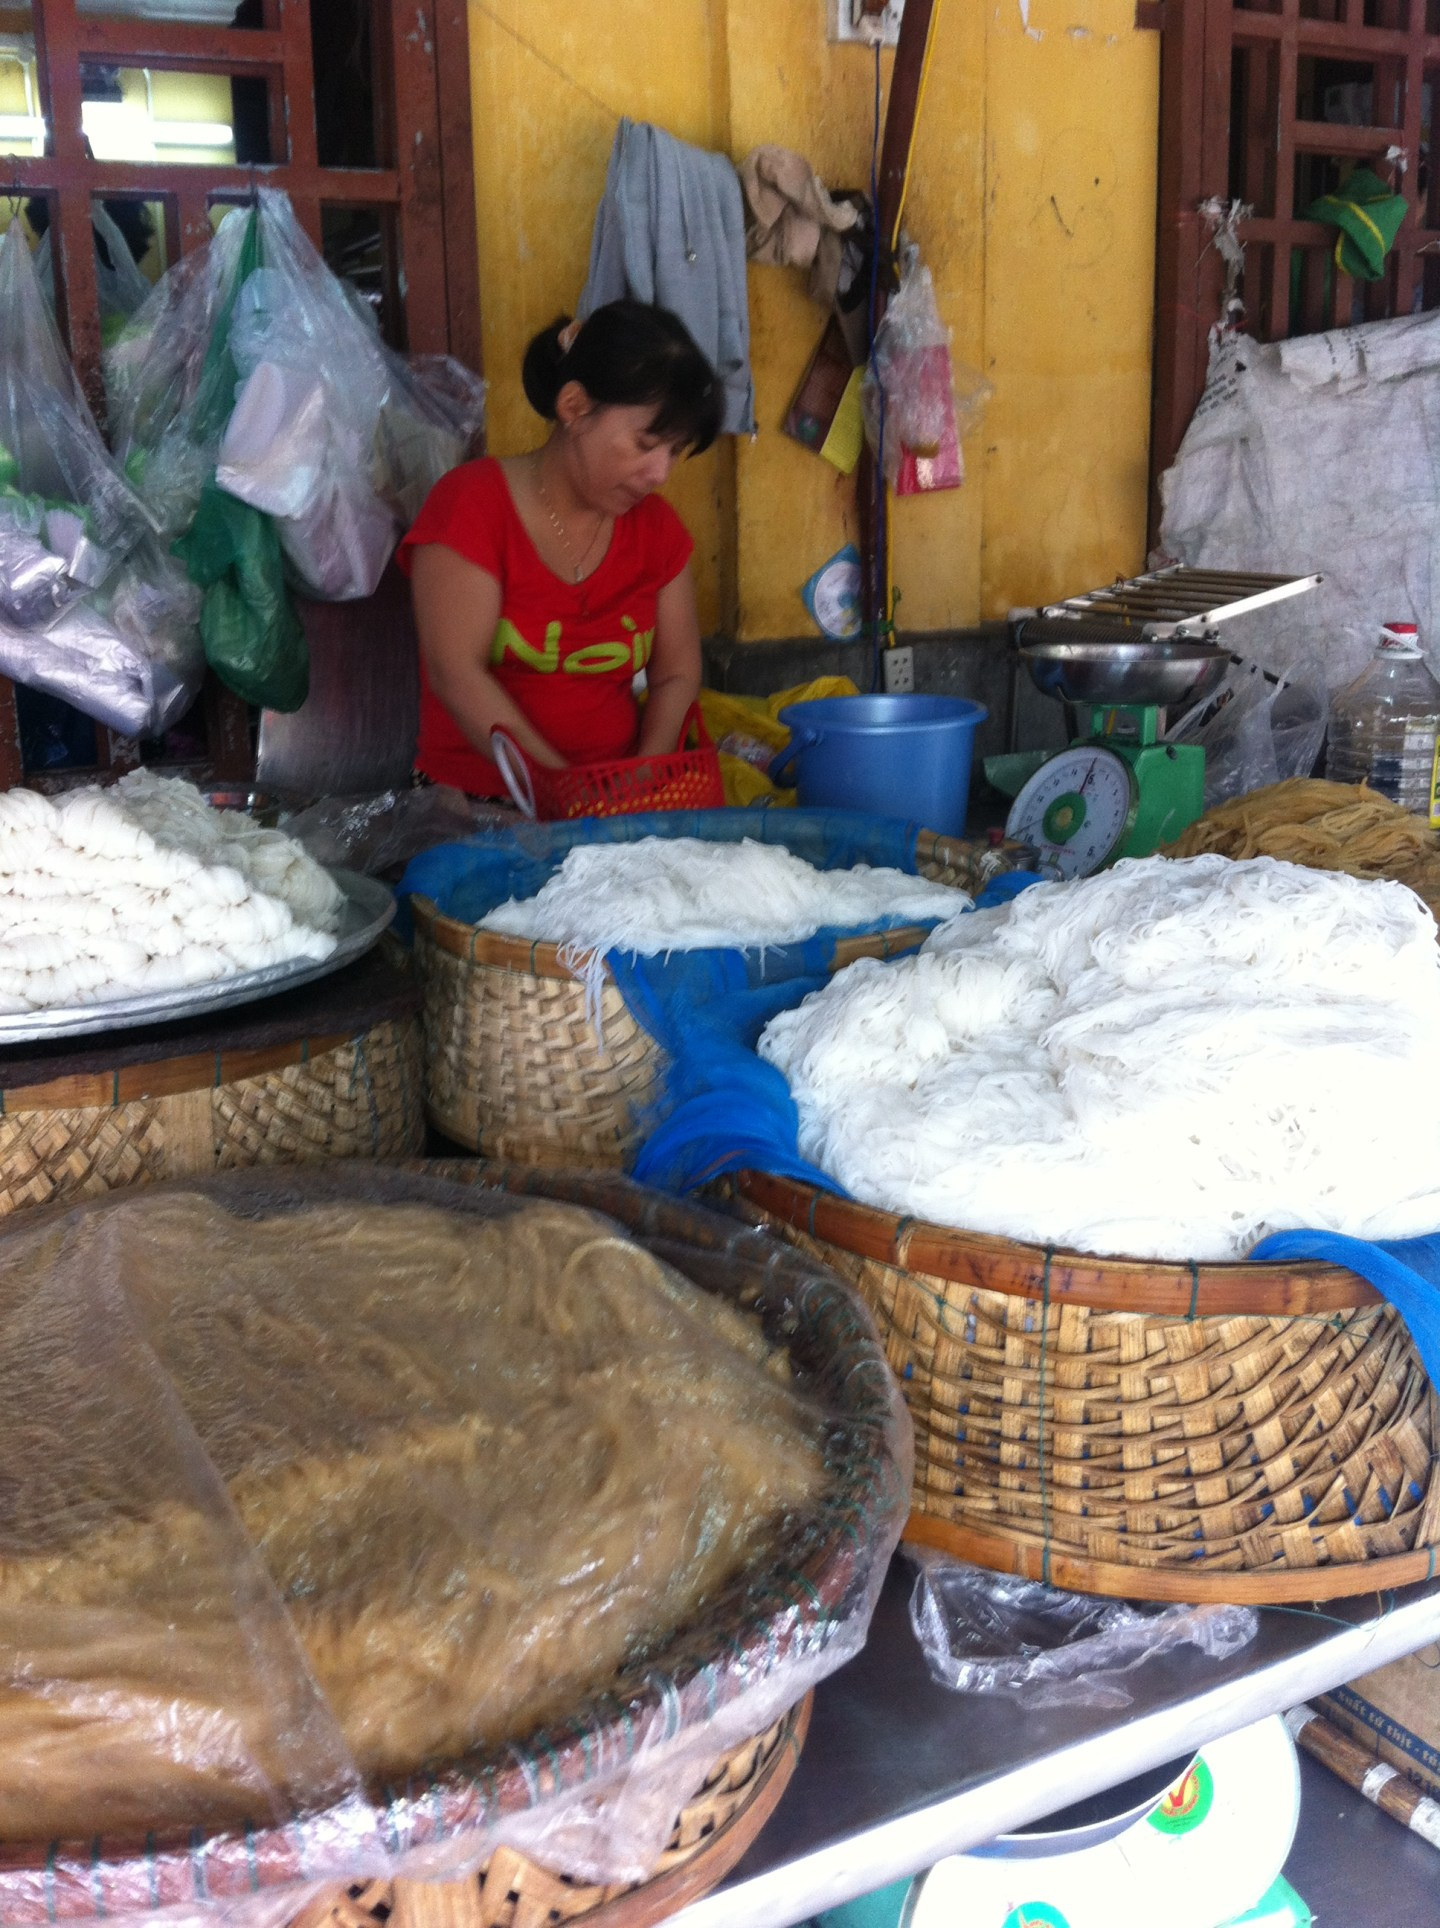 A woman making Cao Lao noodles in Hoi An